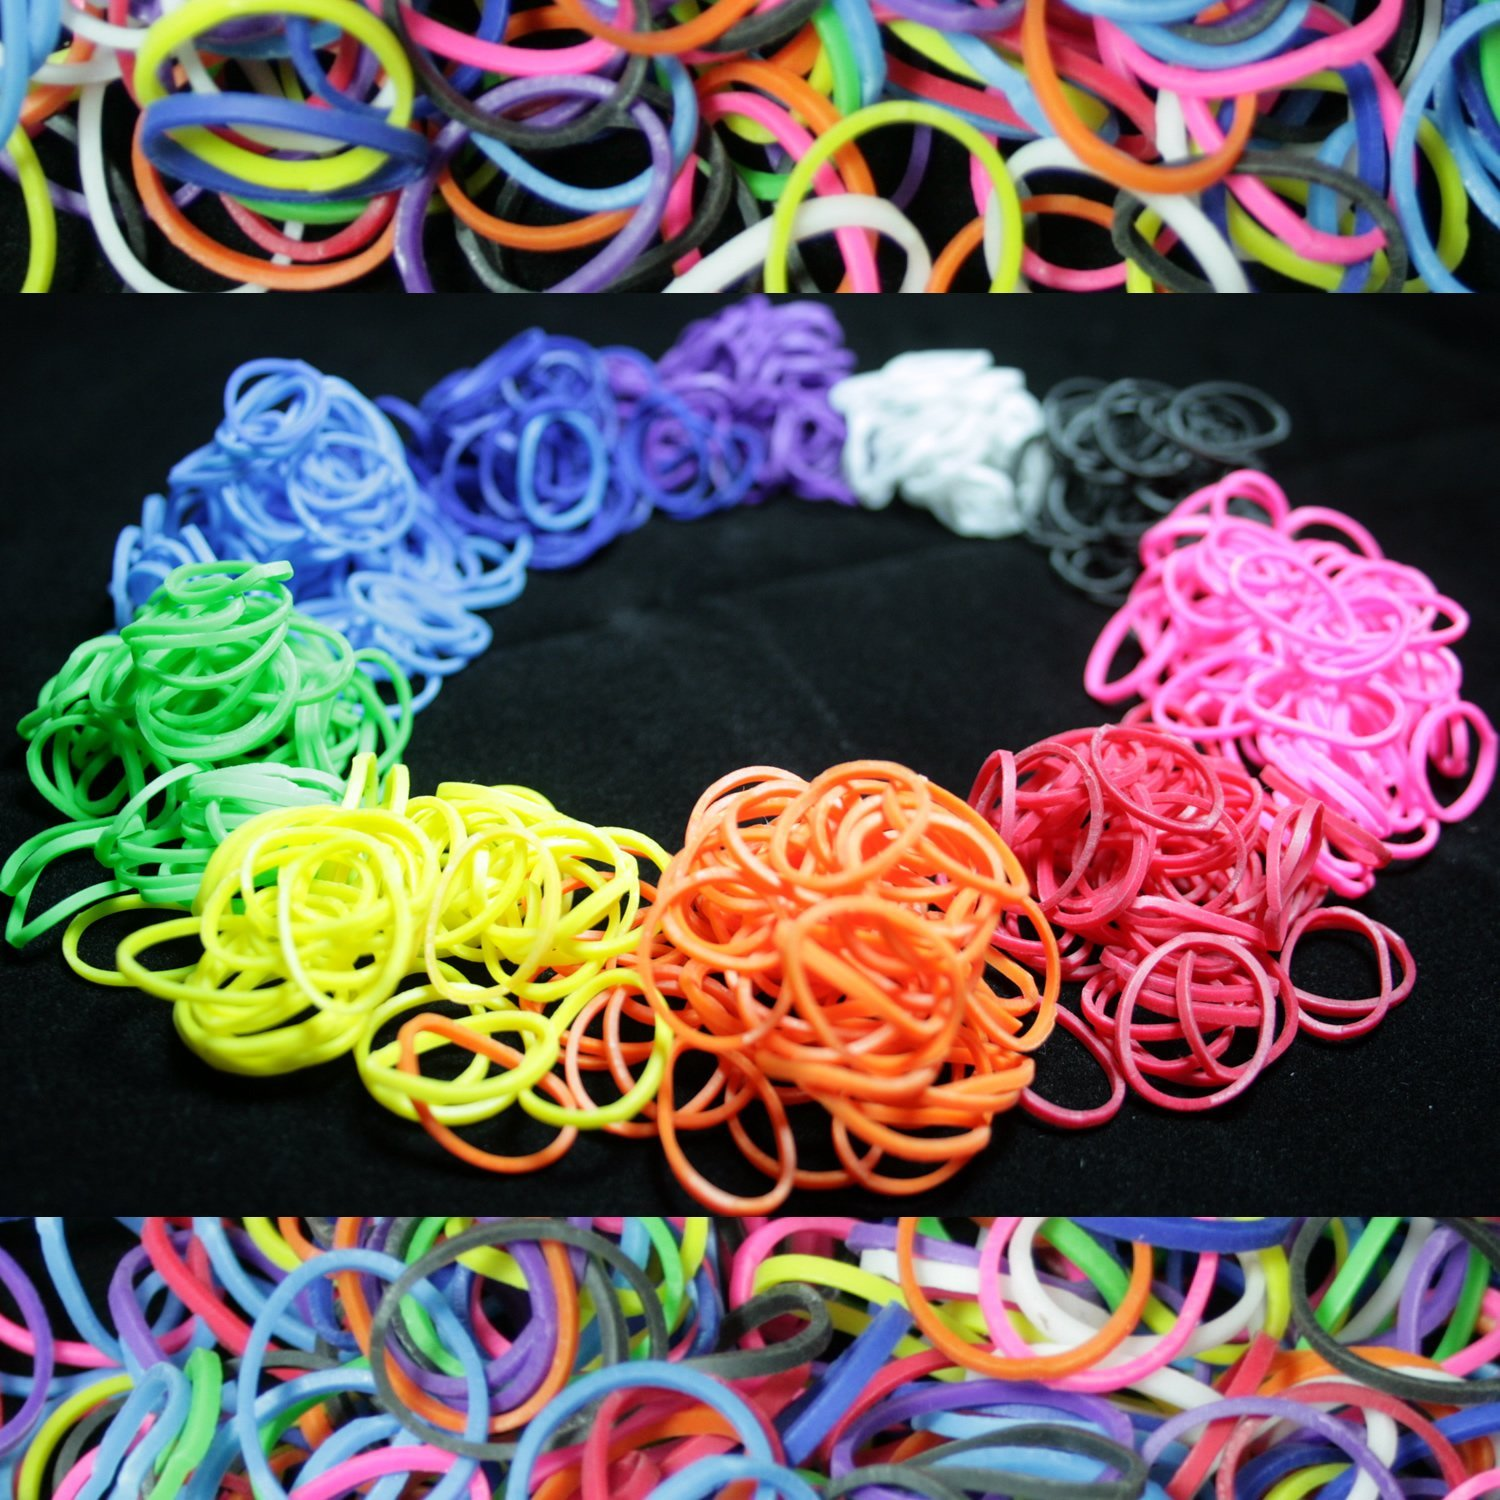 Amazon.com: 600 Piece Multi-Color Rubber Band and S-Clips Loom Art ...